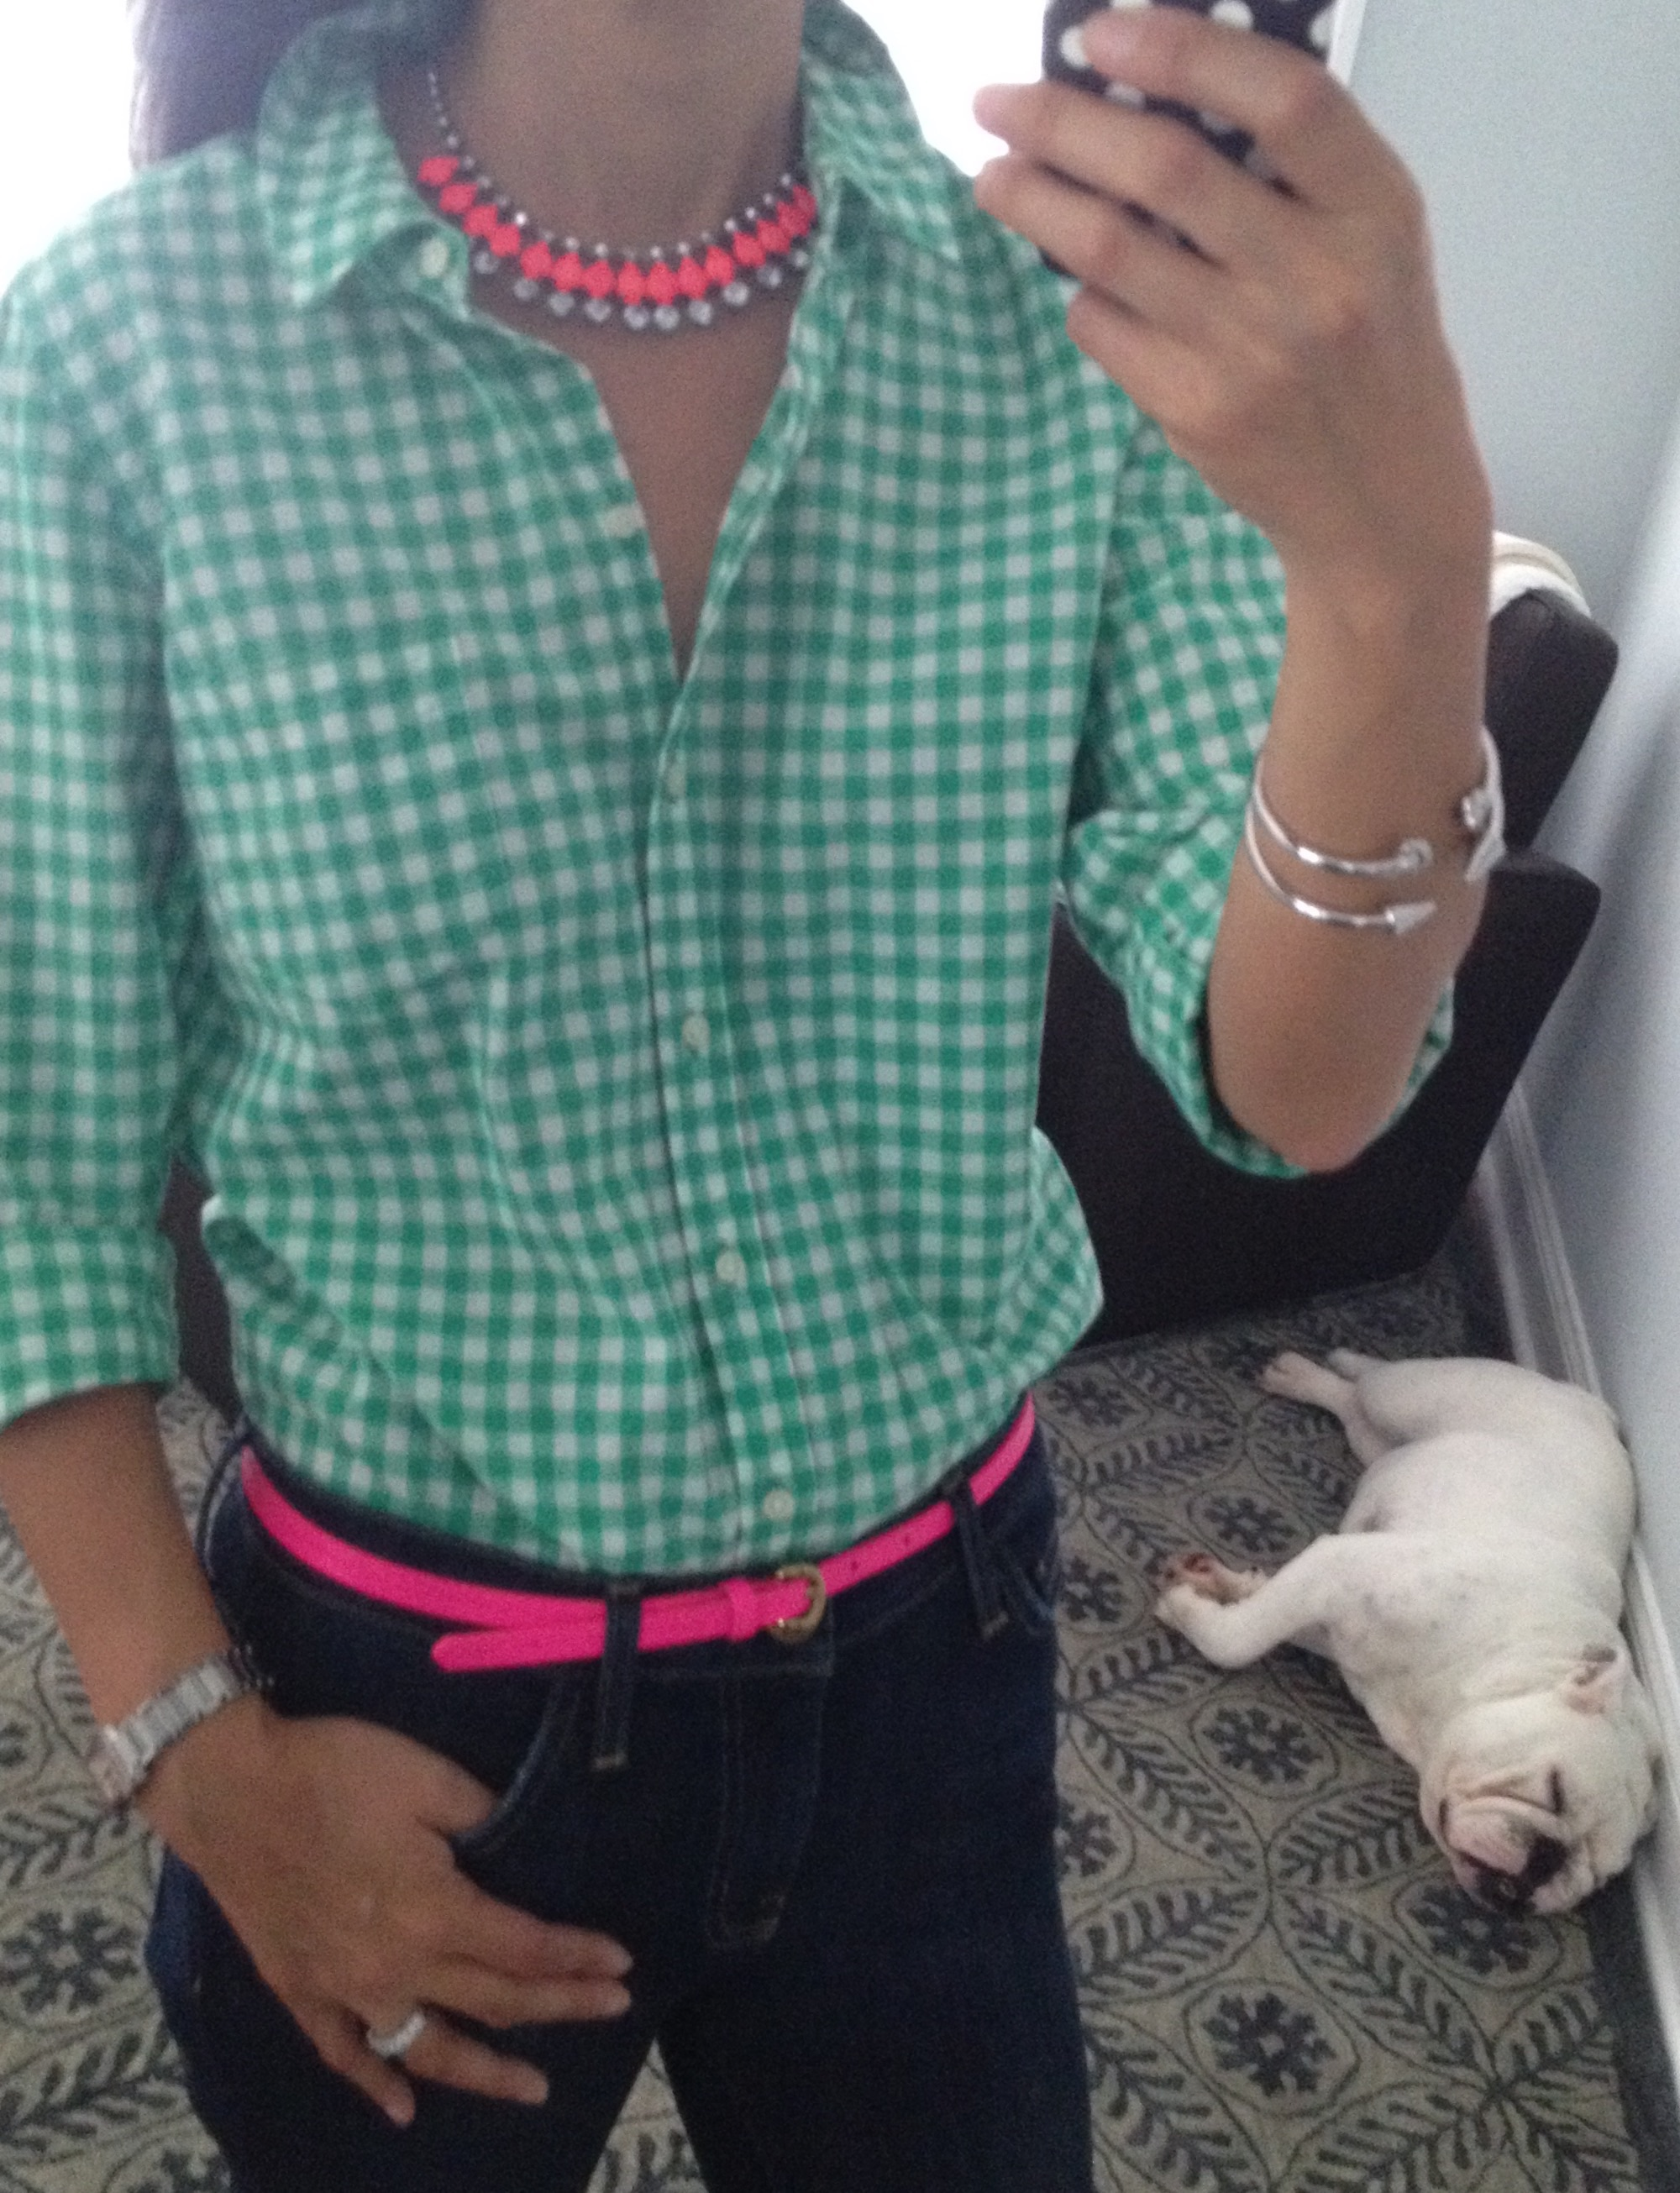 3653b2c56eb ... similar); Current Elliott Stiletto jeans (old, similar); H&M neon pink  statement necklace (old); J.Crew Factory neon pink skinny belt (old, ...